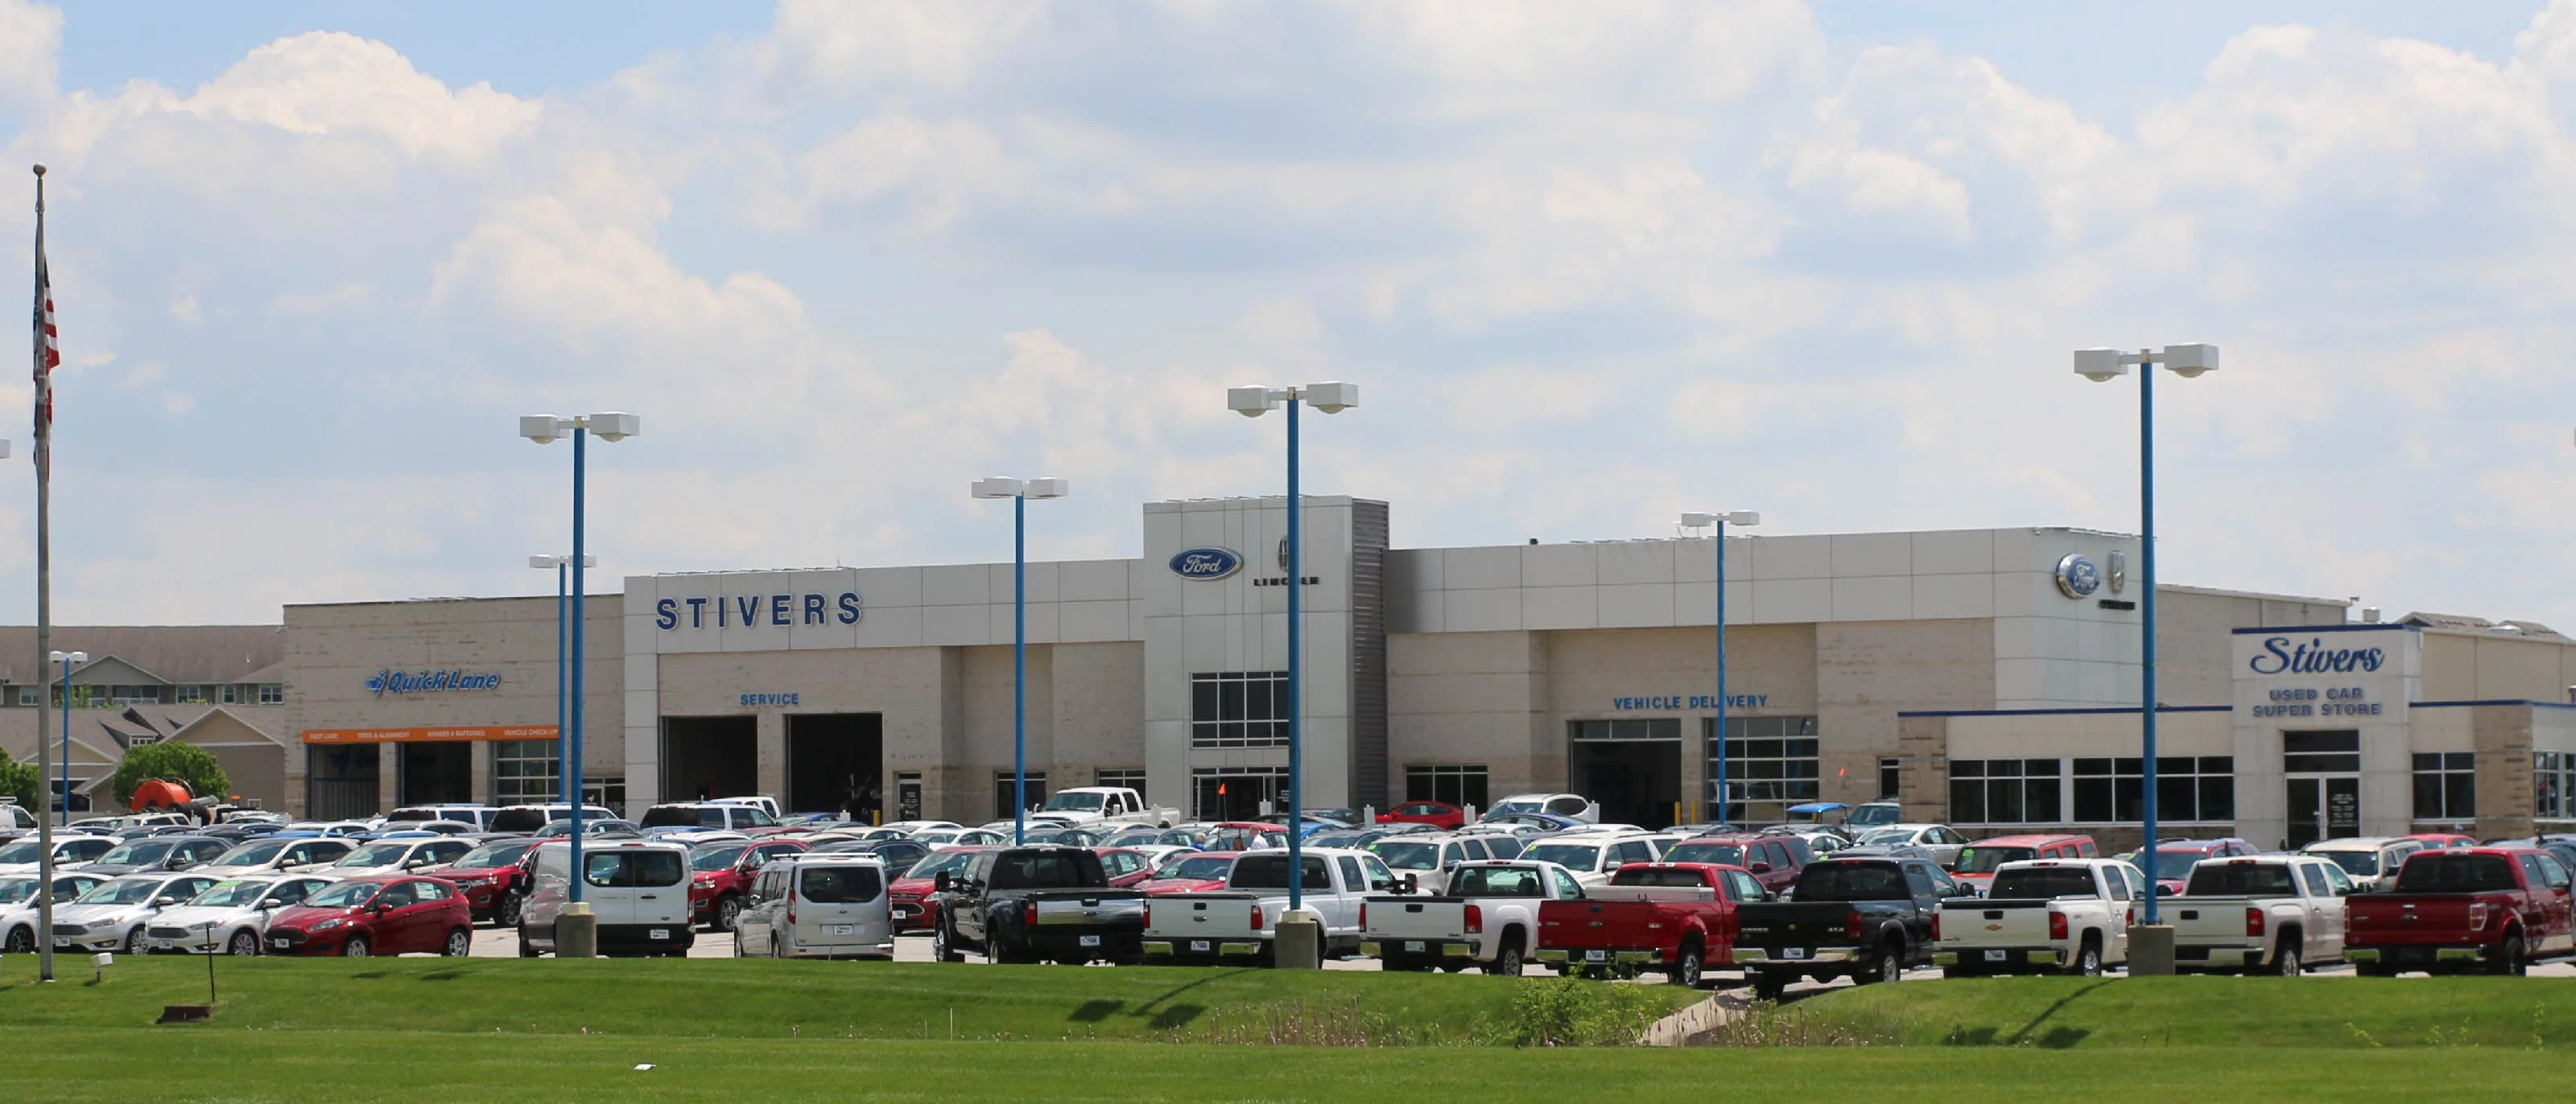 Stivers Ford Lincoln Is Your 1 Des Moines Ford Dealer